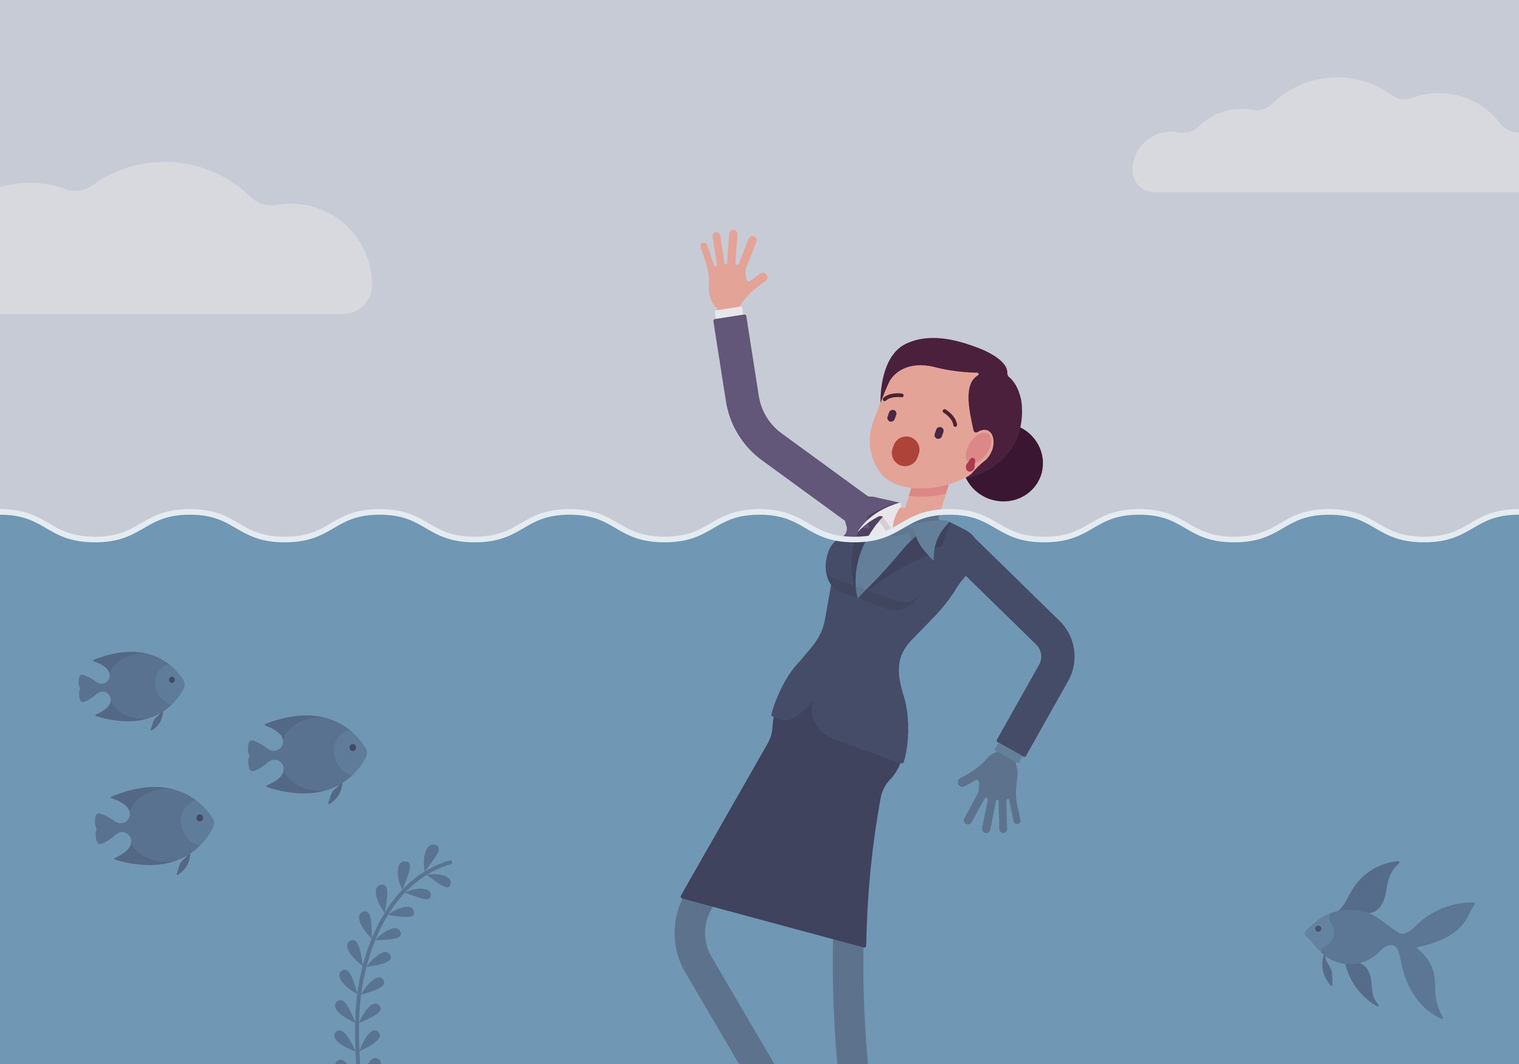 The Vicious Cycle of Workplace Bullying